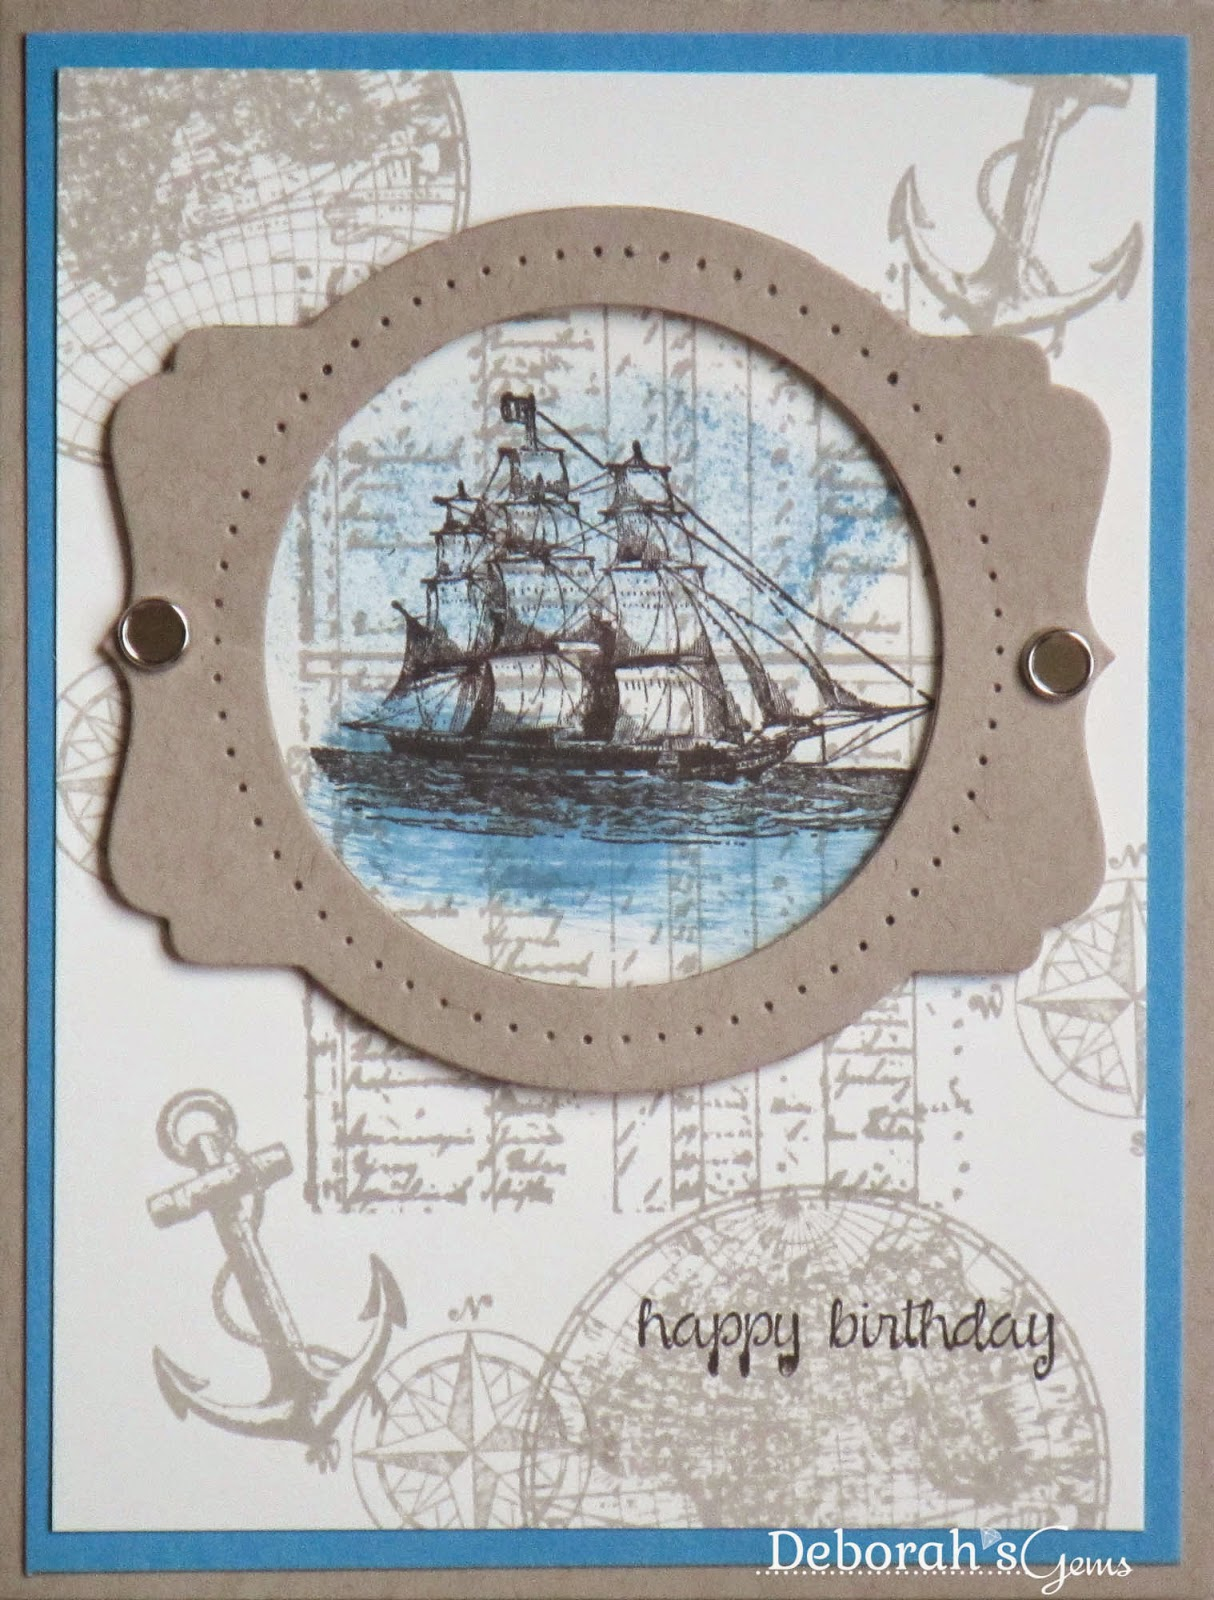 Nautical B'day - photo by Deborah Frings - Deborah's Gems